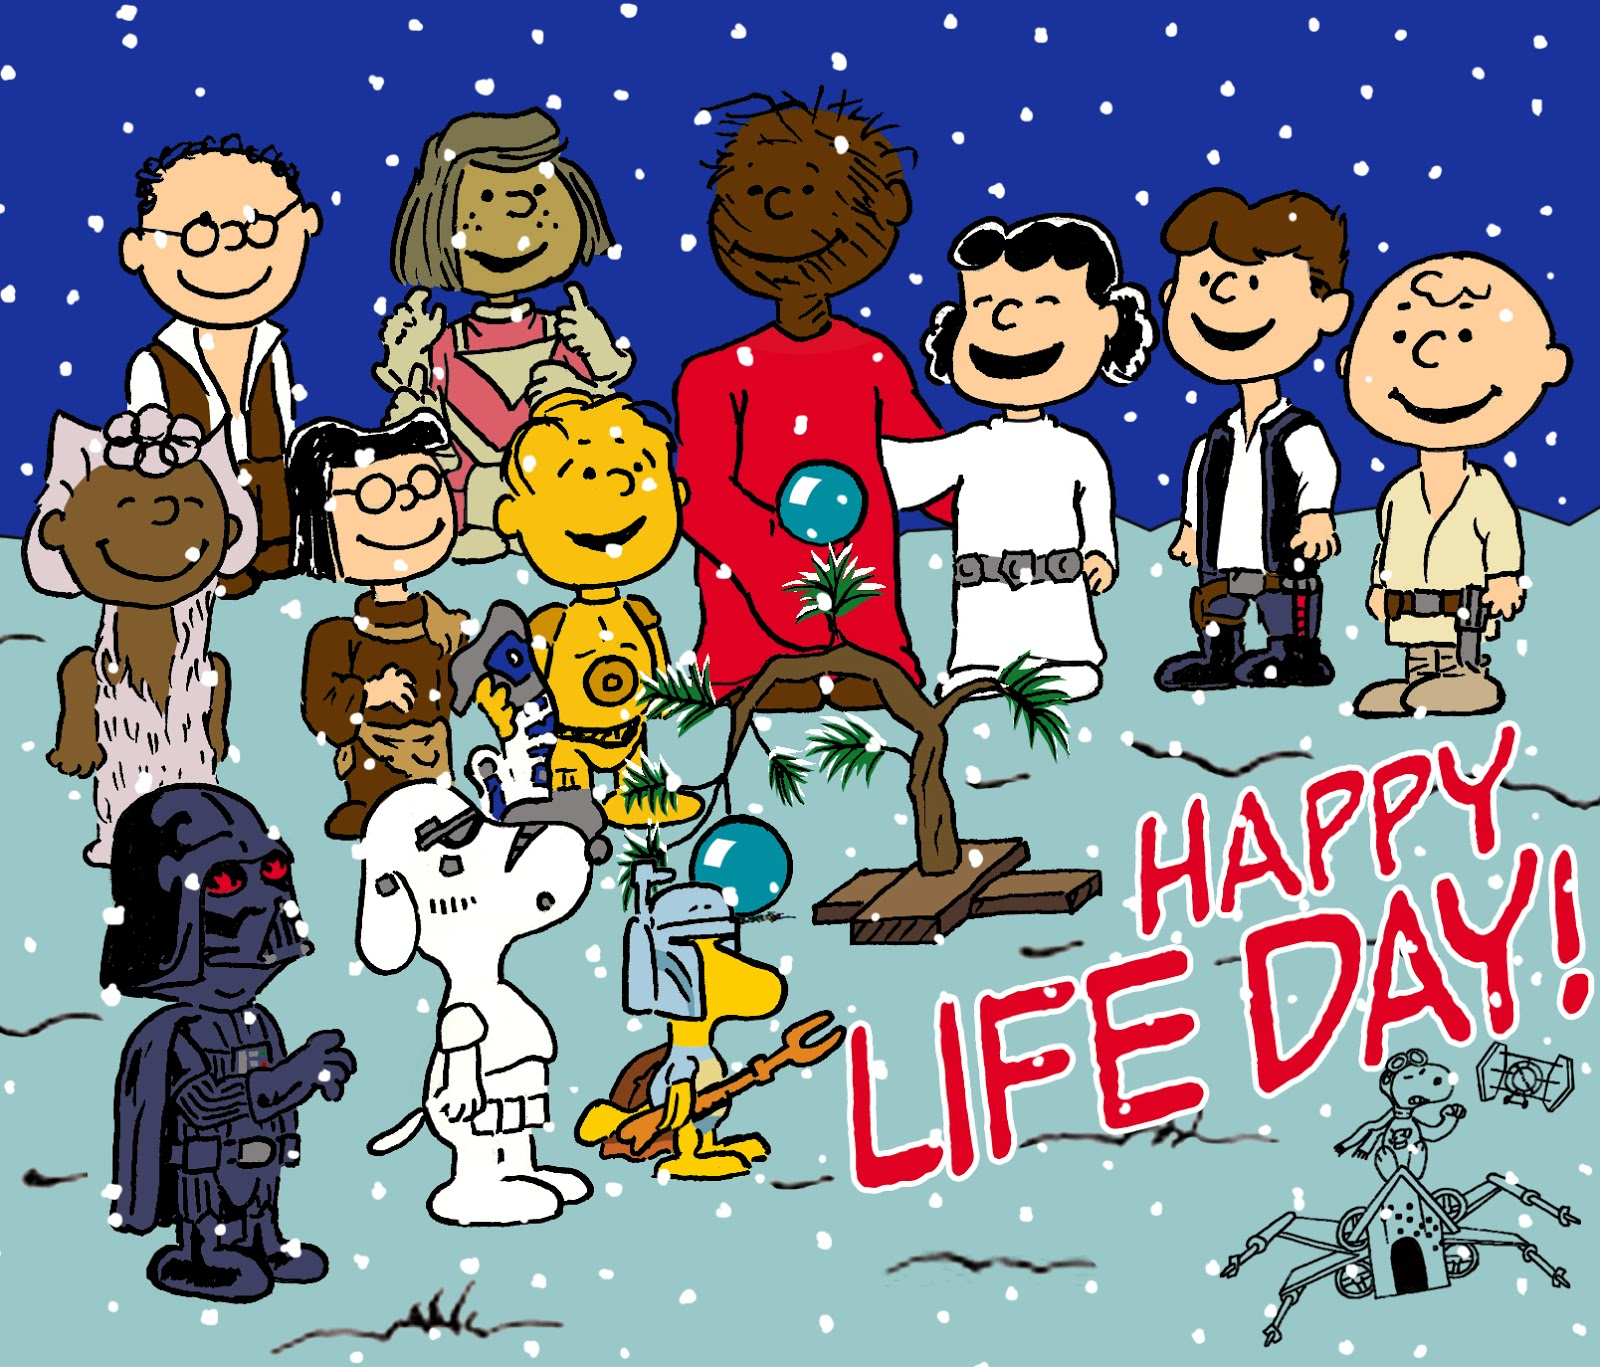 Happy Star Wars Day: World Wide Wookiee Life Day